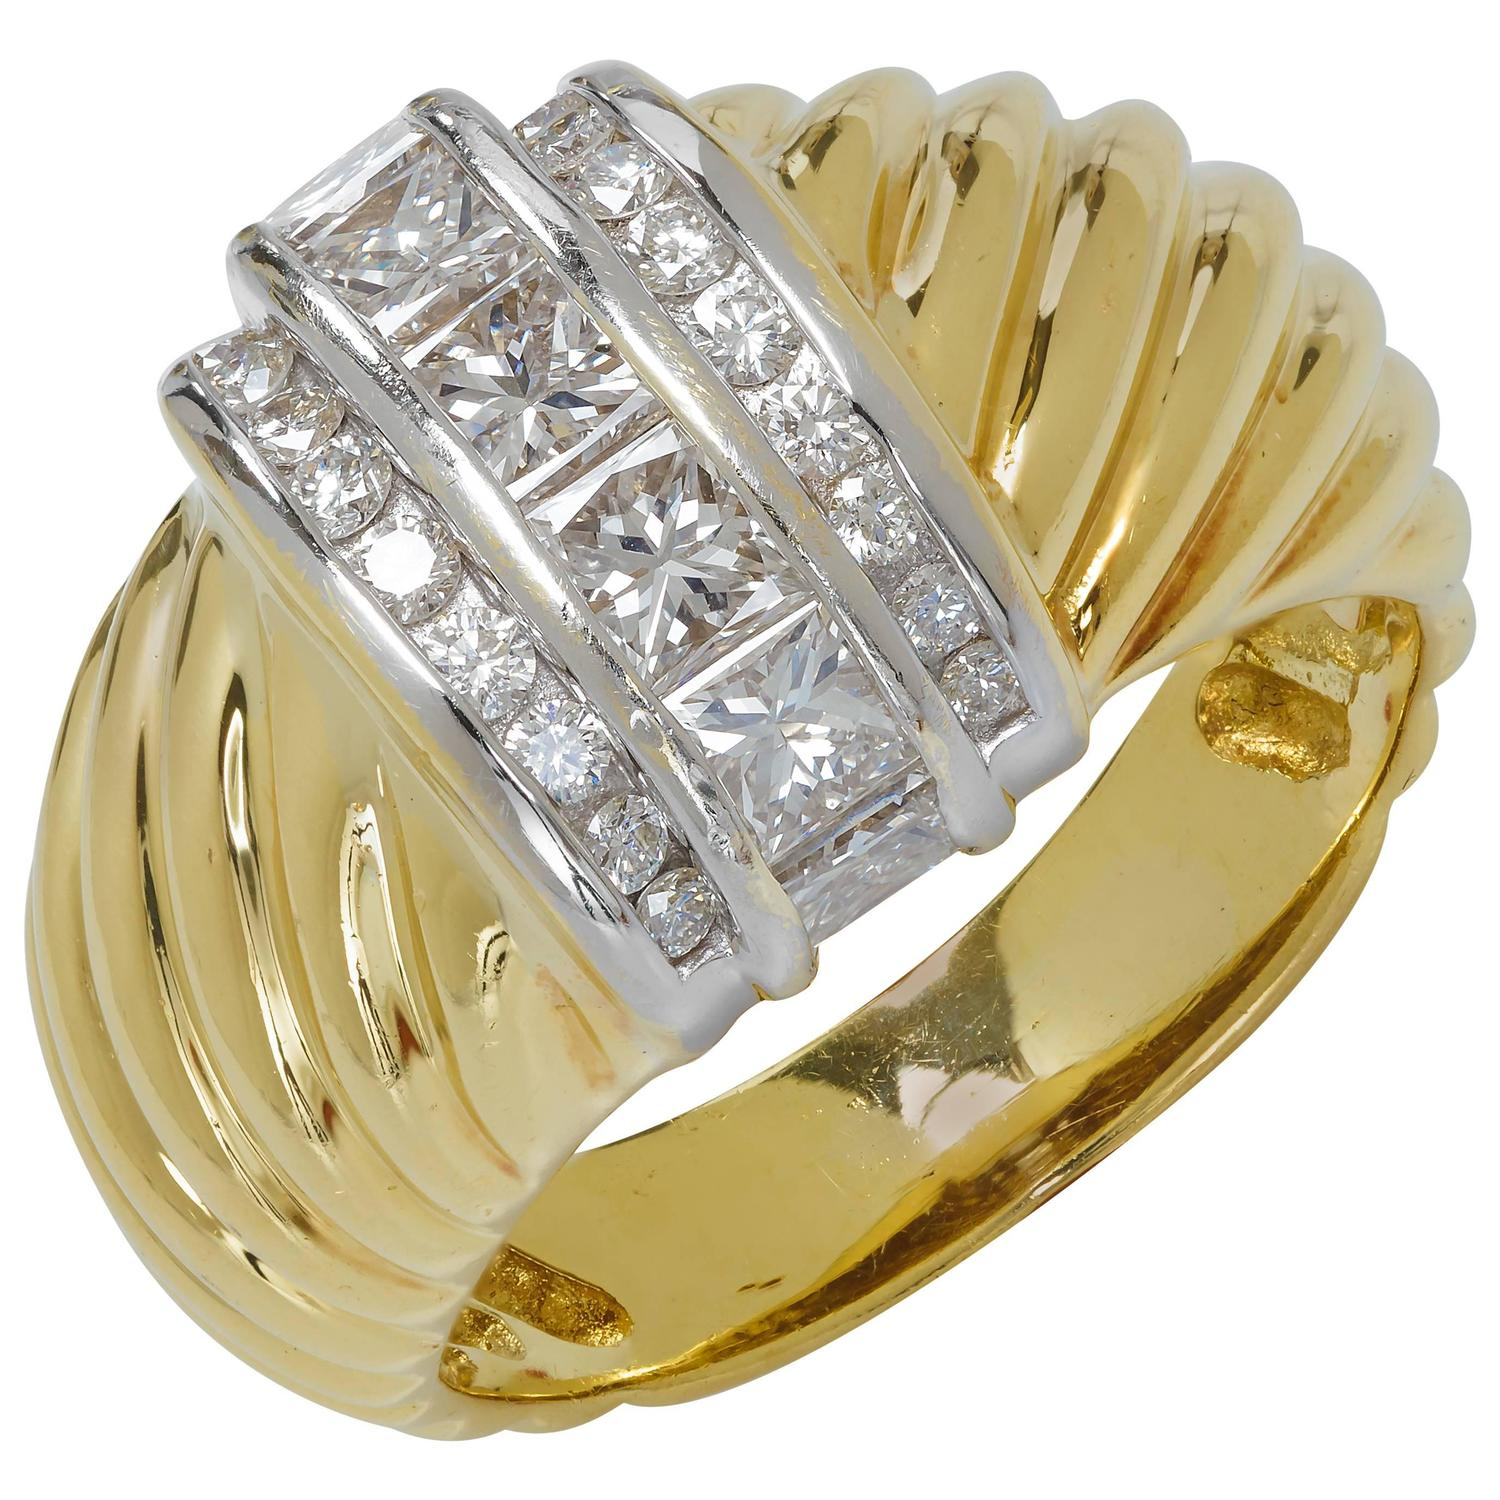 sterling ring product yellow tysons stones watches silver jewelry gold david rings and without precious yurman metal cable